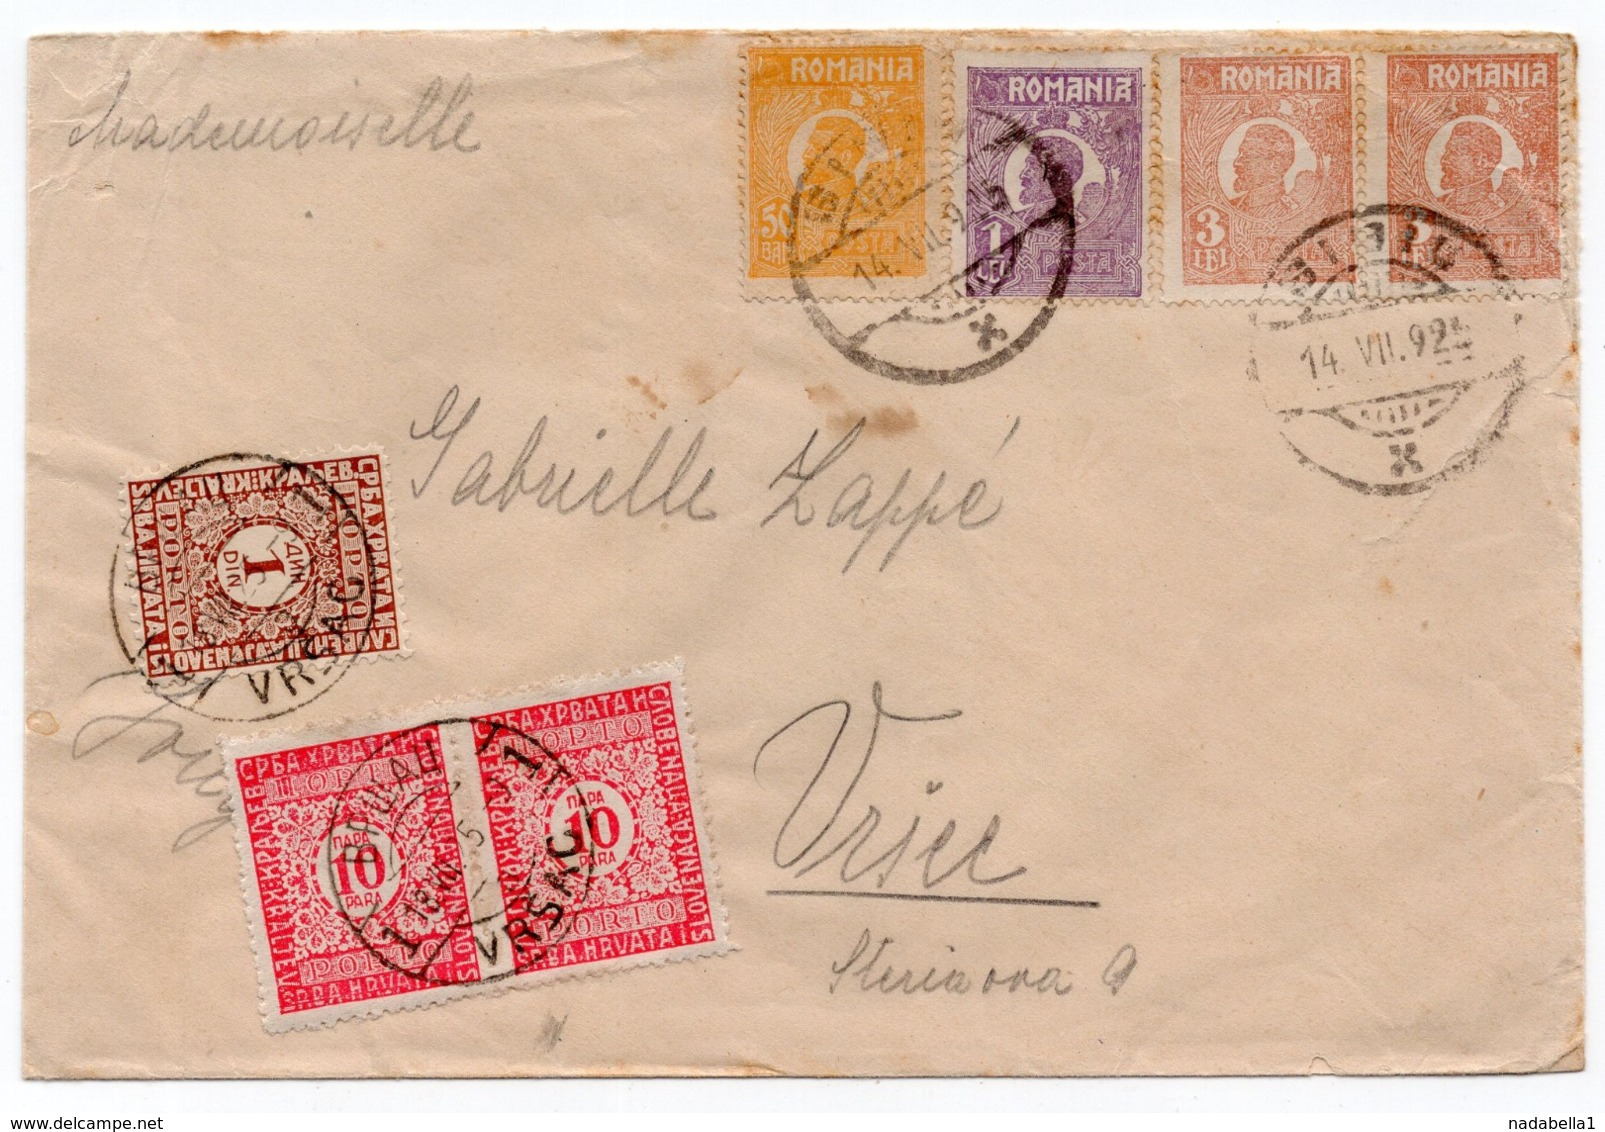 1925 ROMANIA TO YUGOSLAVIA, VRSAC, POSTAGE DUE, POSTER STAMP AT THE BACK - Covers & Documents